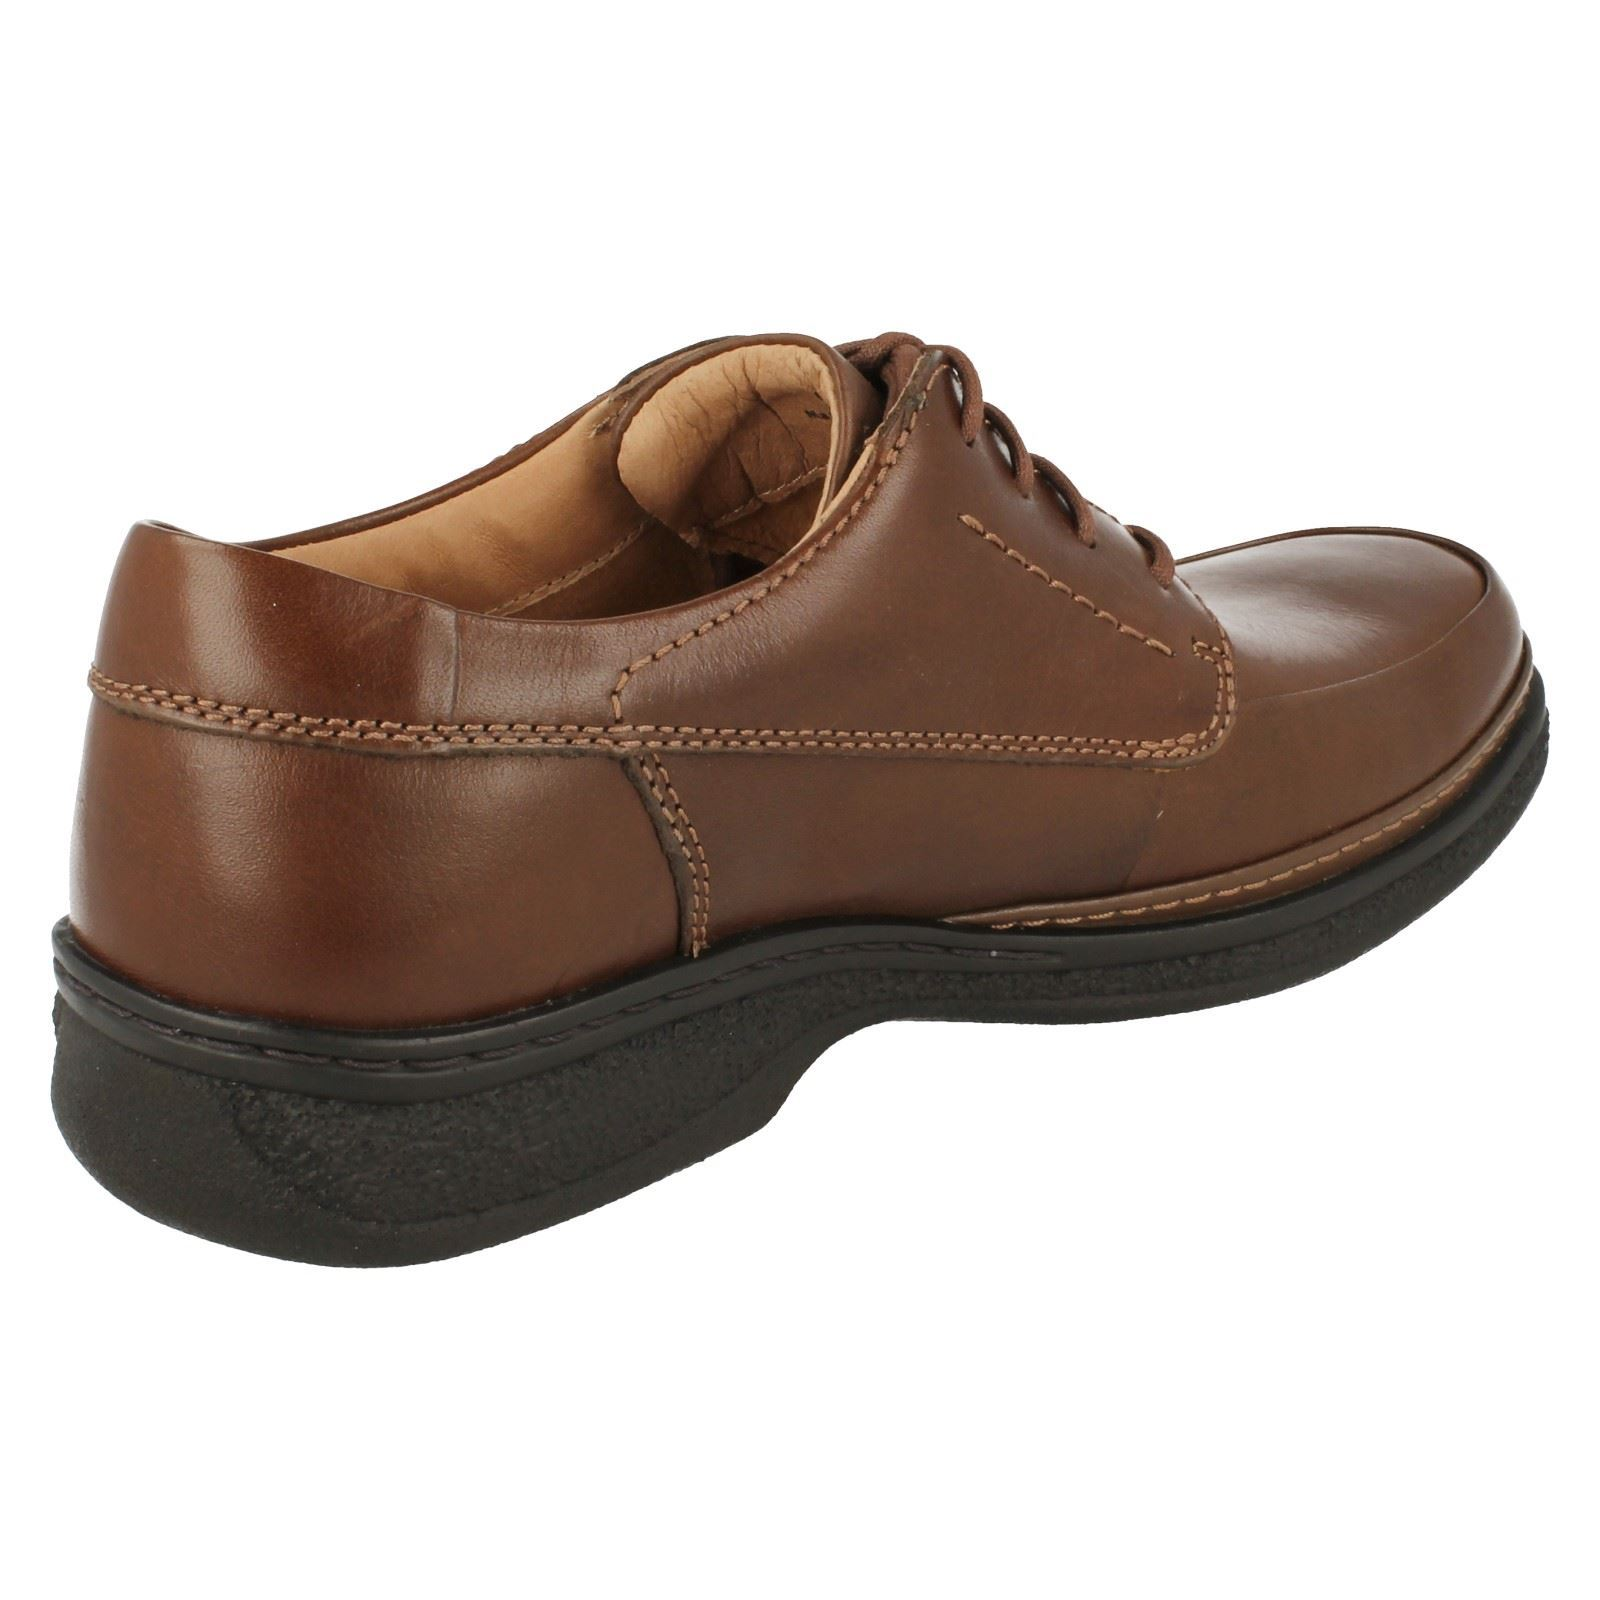 Mens Clarks Formal Lace Up Shoes /'Stonehill Pace/'